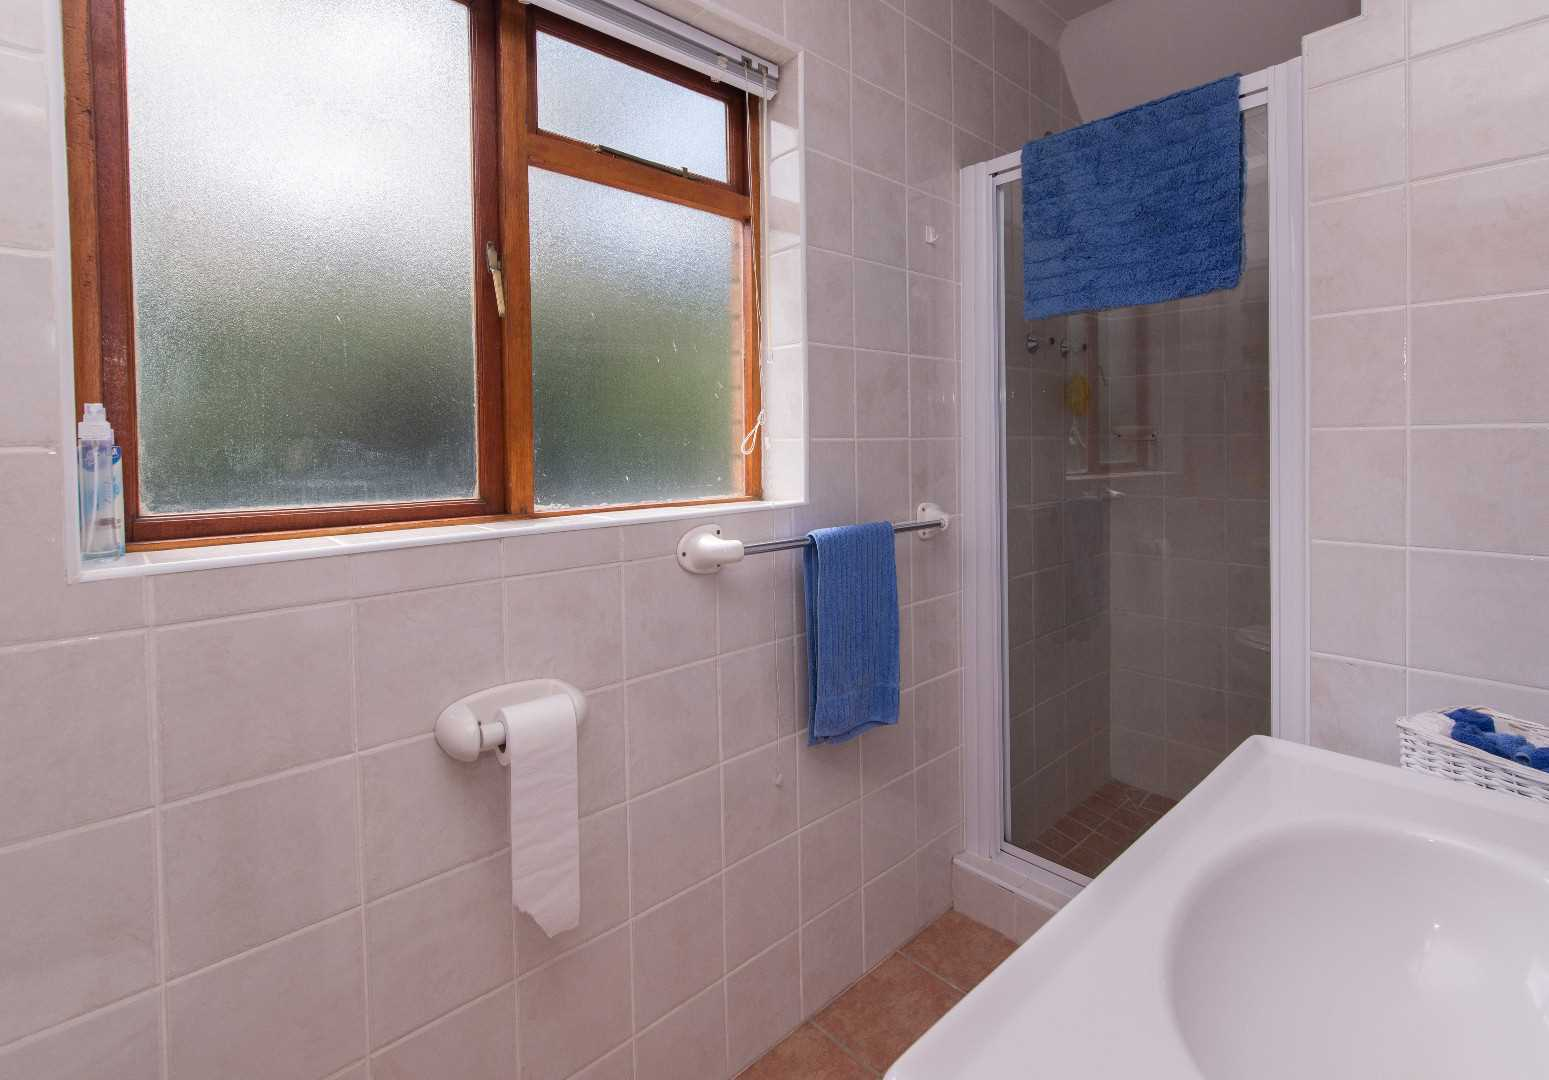 bathroom in flat - shower, toilet and basin